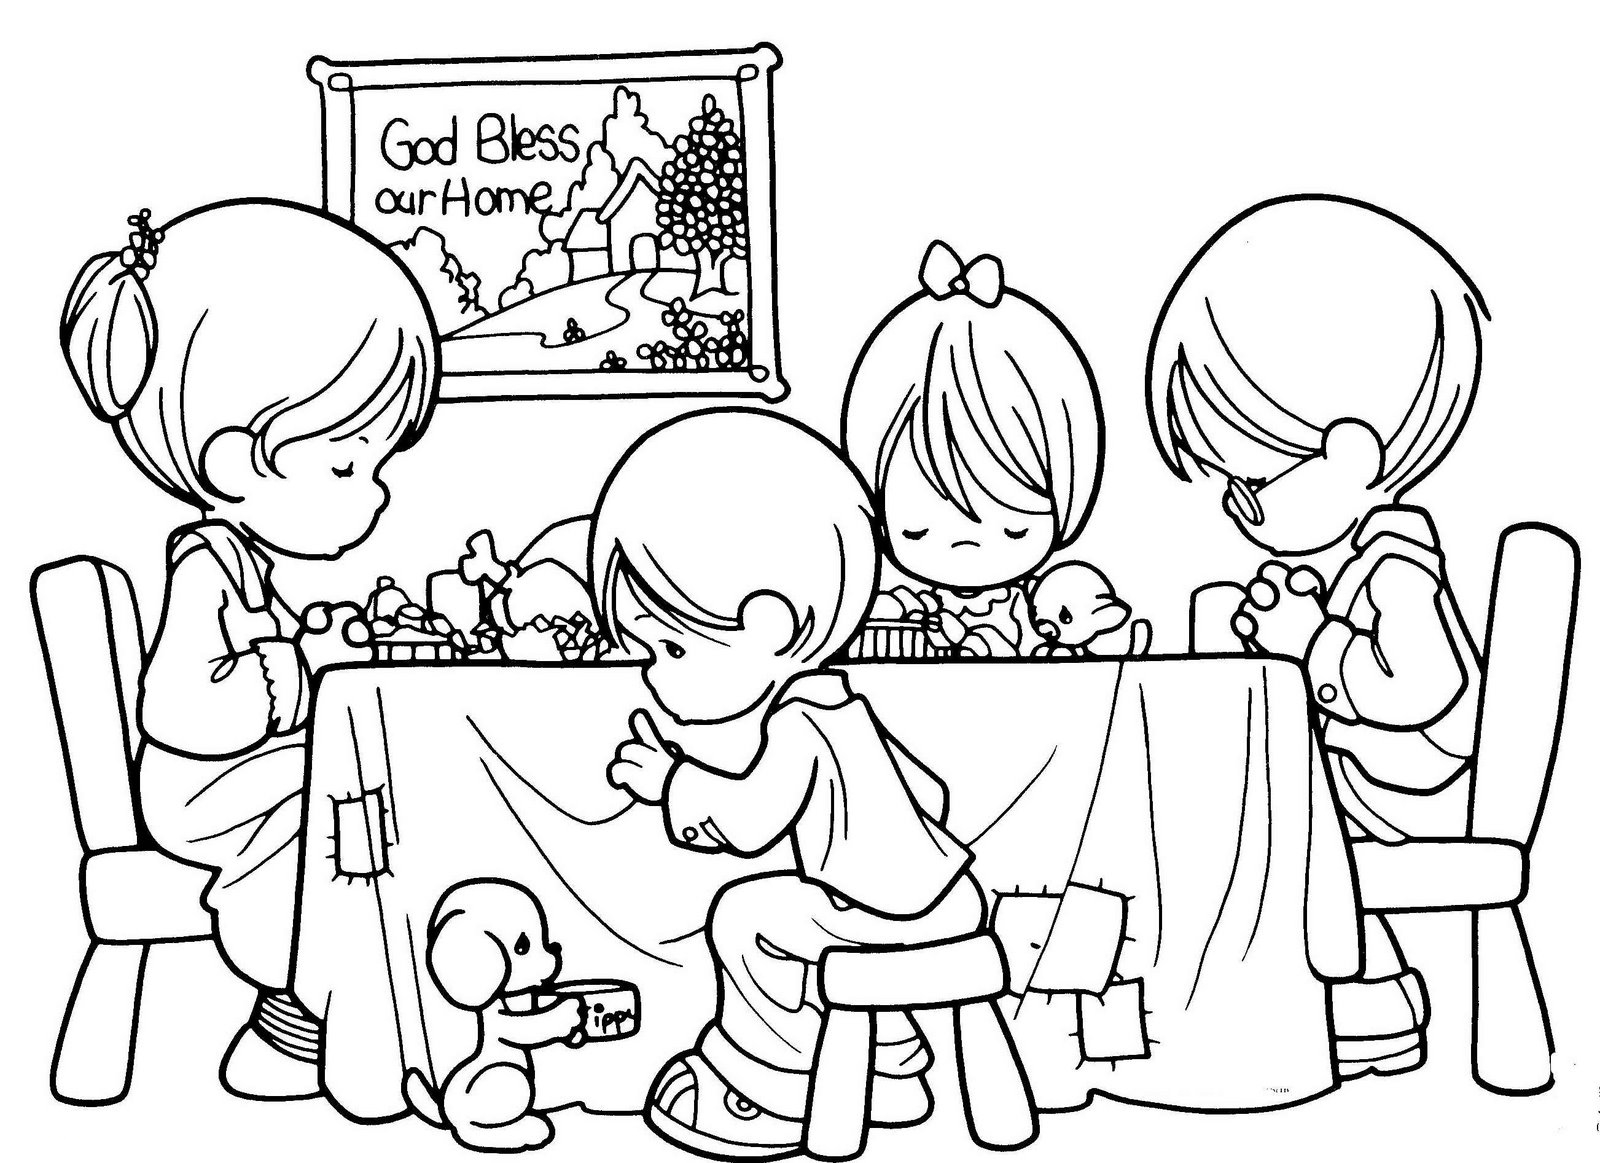 download free christian coloring pages - Christian Coloring Pages